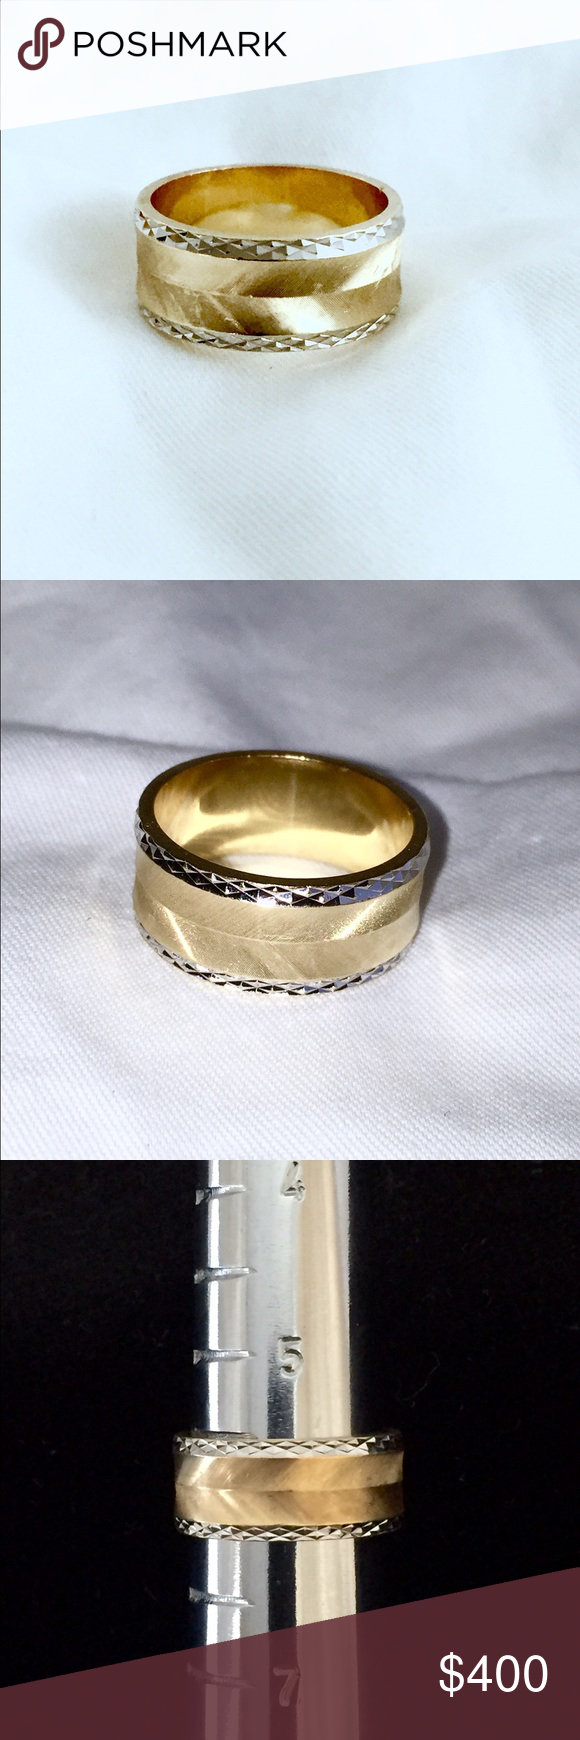 SOLD on Etsy💔 14k Ring (6.3g) ArtCarved Jewelry, Vintage